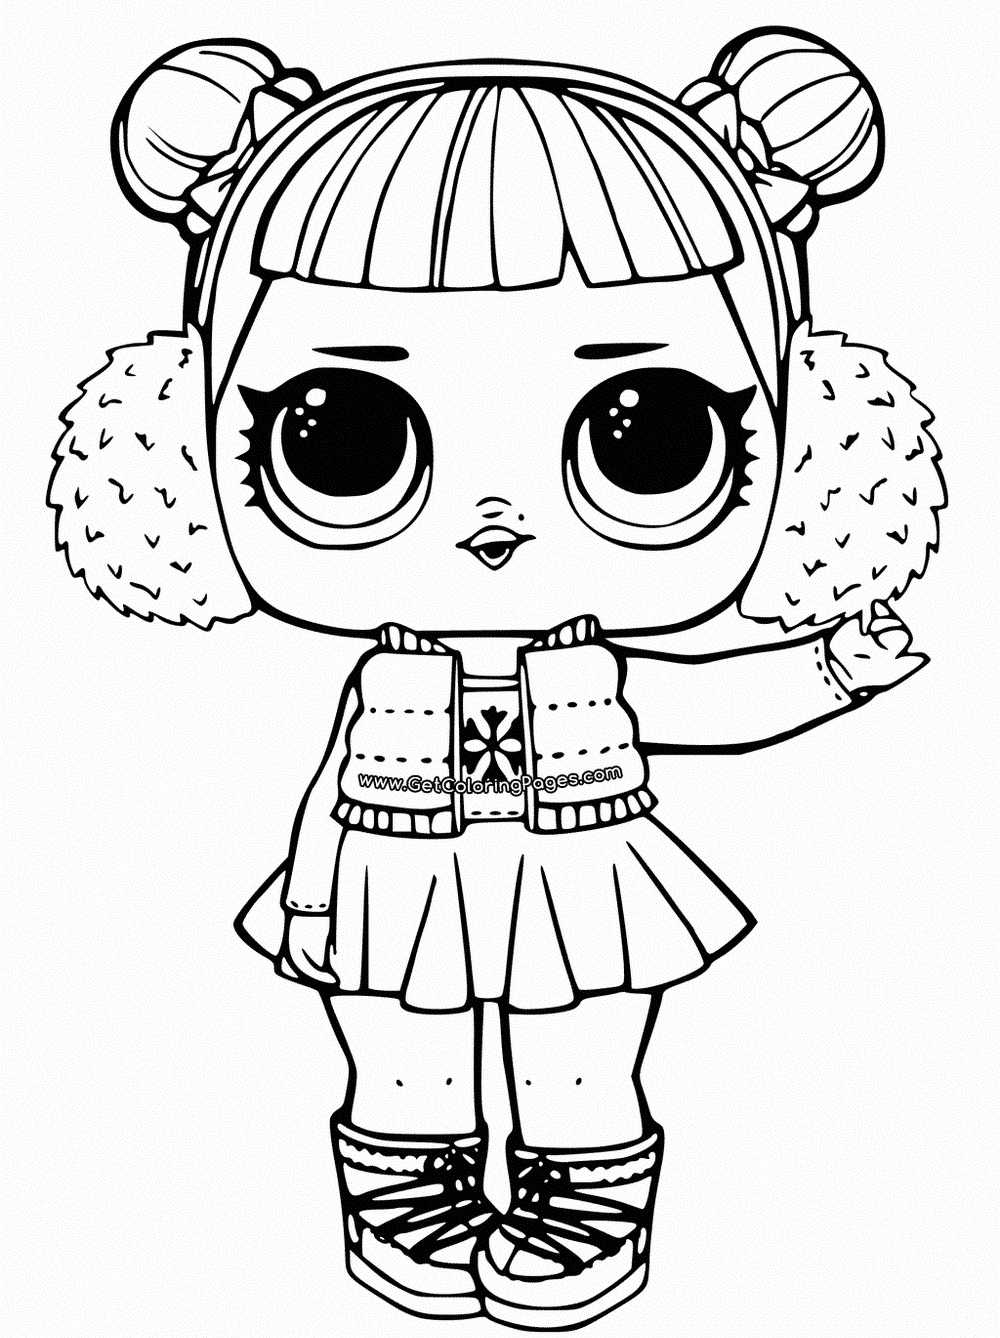 coloring book free printable love doodle pdf coloring page coloring book